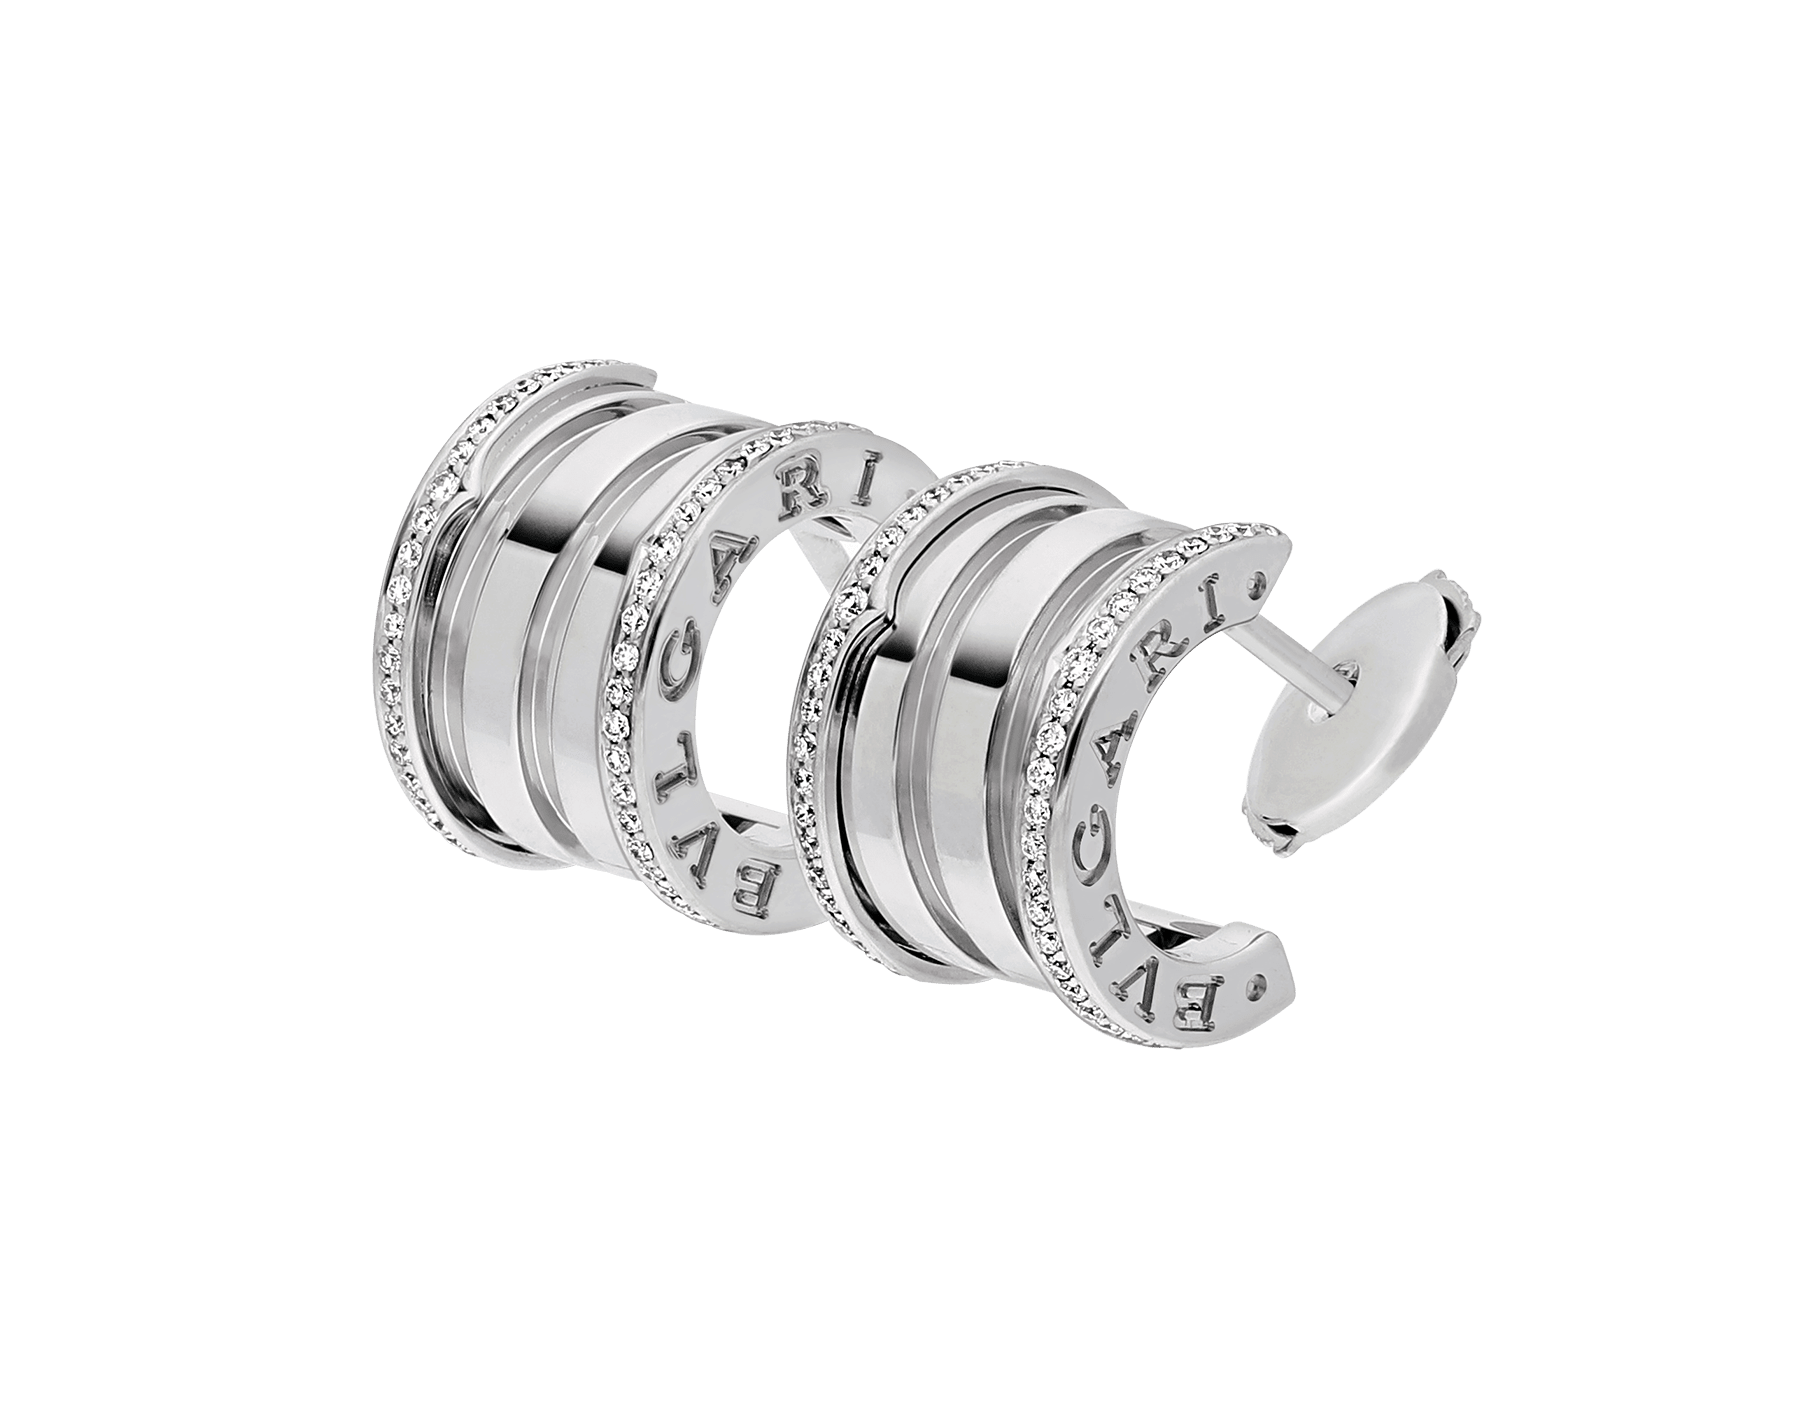 Fusing the bold character of their fluid curves with the preciousness of pavé diamonds, the B.zero1 earrings reveal the contemporary elegance and captivating charisma of a jewellery icon. 353797 image 2